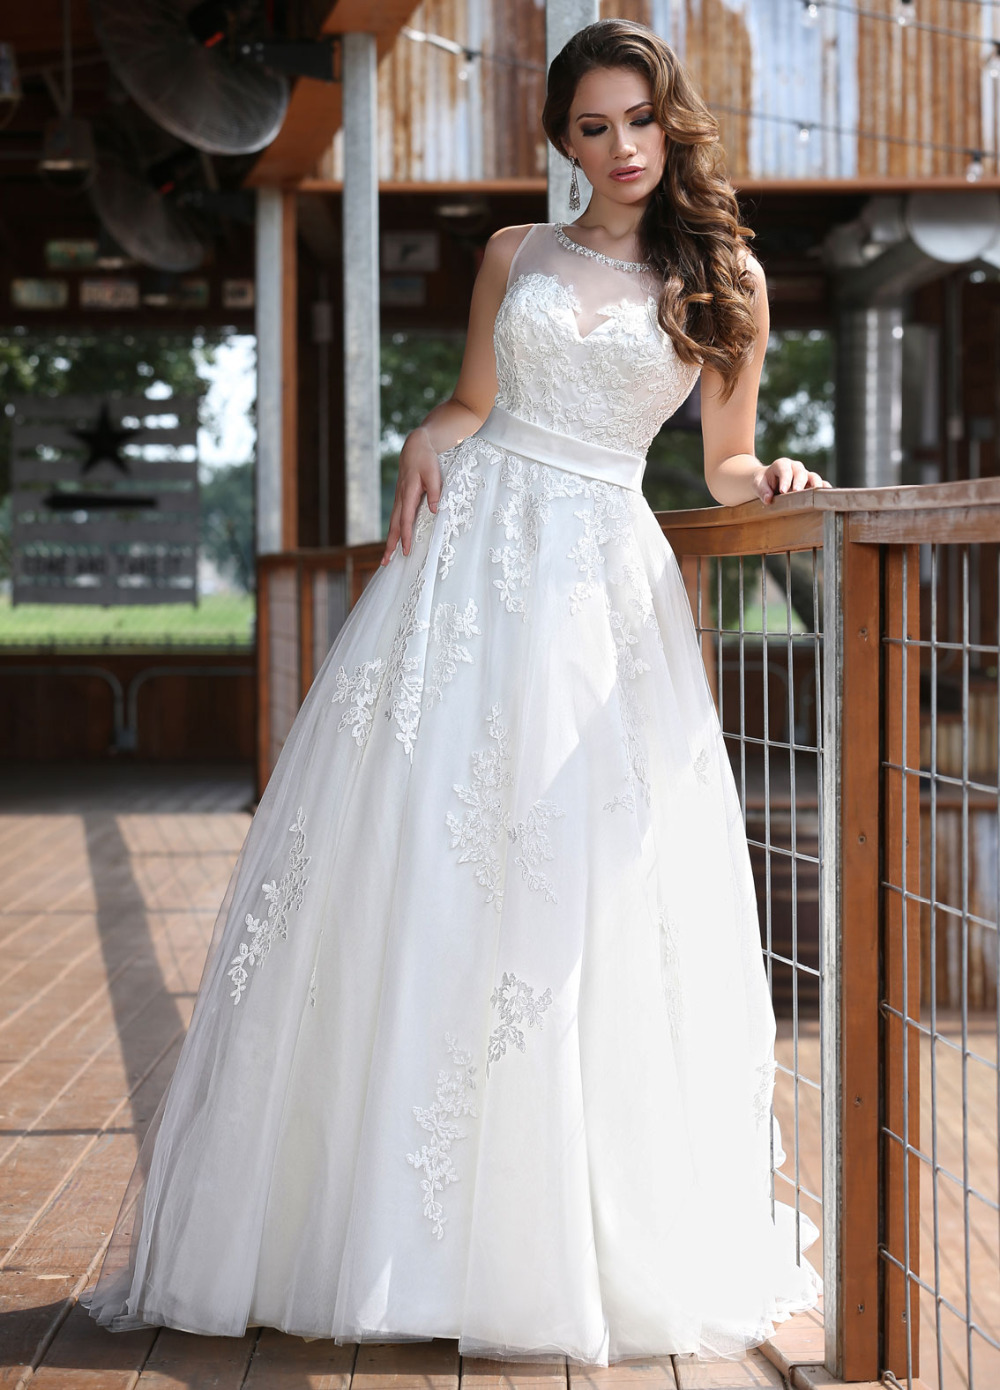 chiffon a line wedding dress with beaded sheer straps and appliqued waist hswdh sheer top wedding dress Bateau Neck Sheer and Pleated Chiffon A Line Wedding Dress